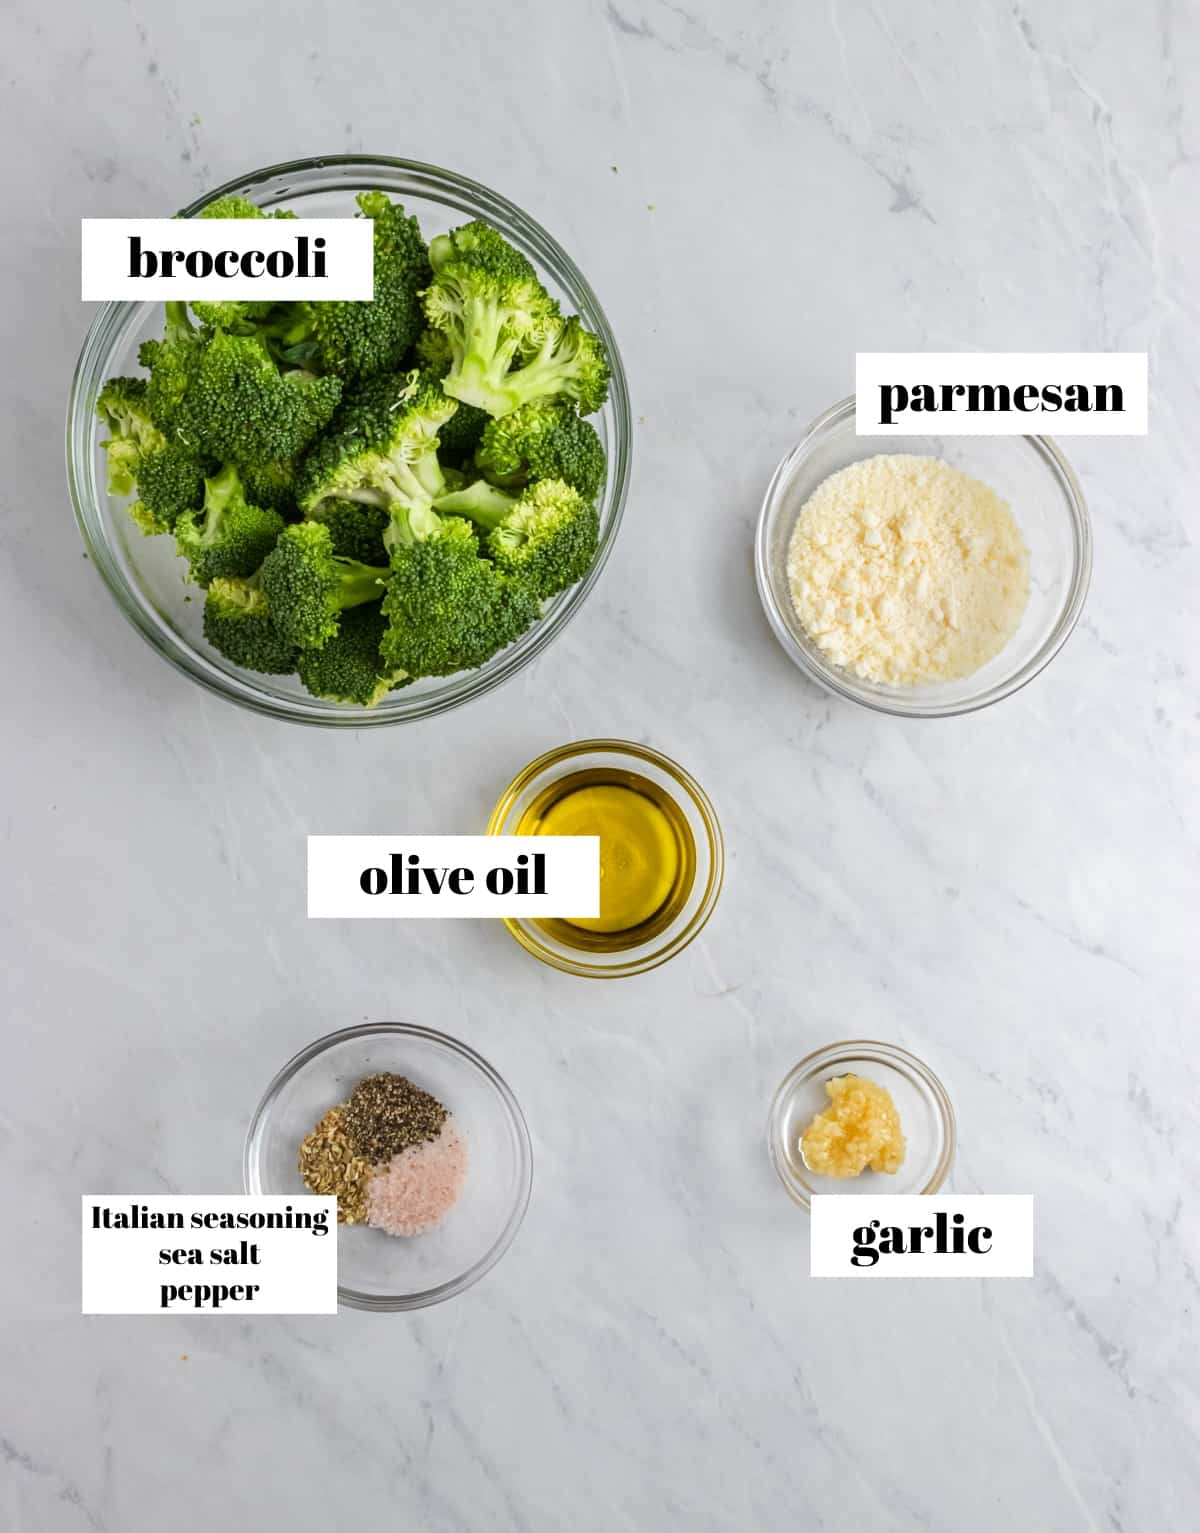 Broccoli, garlic, olive oil and ingredients labeled on counter.